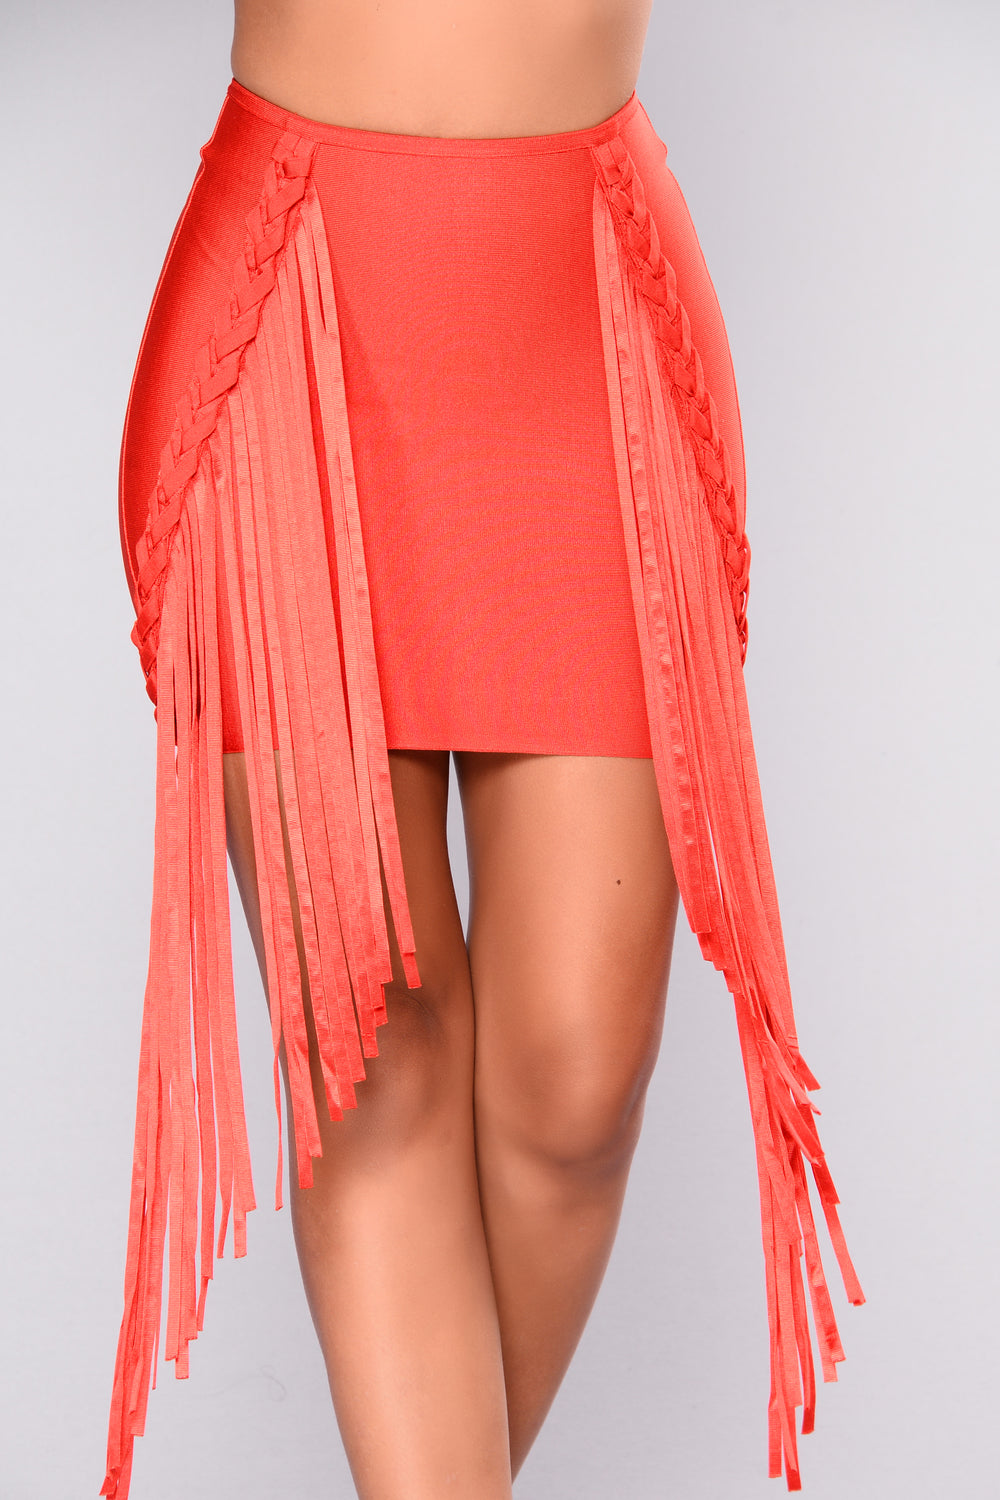 Private Parties Bandage Skirt - Red